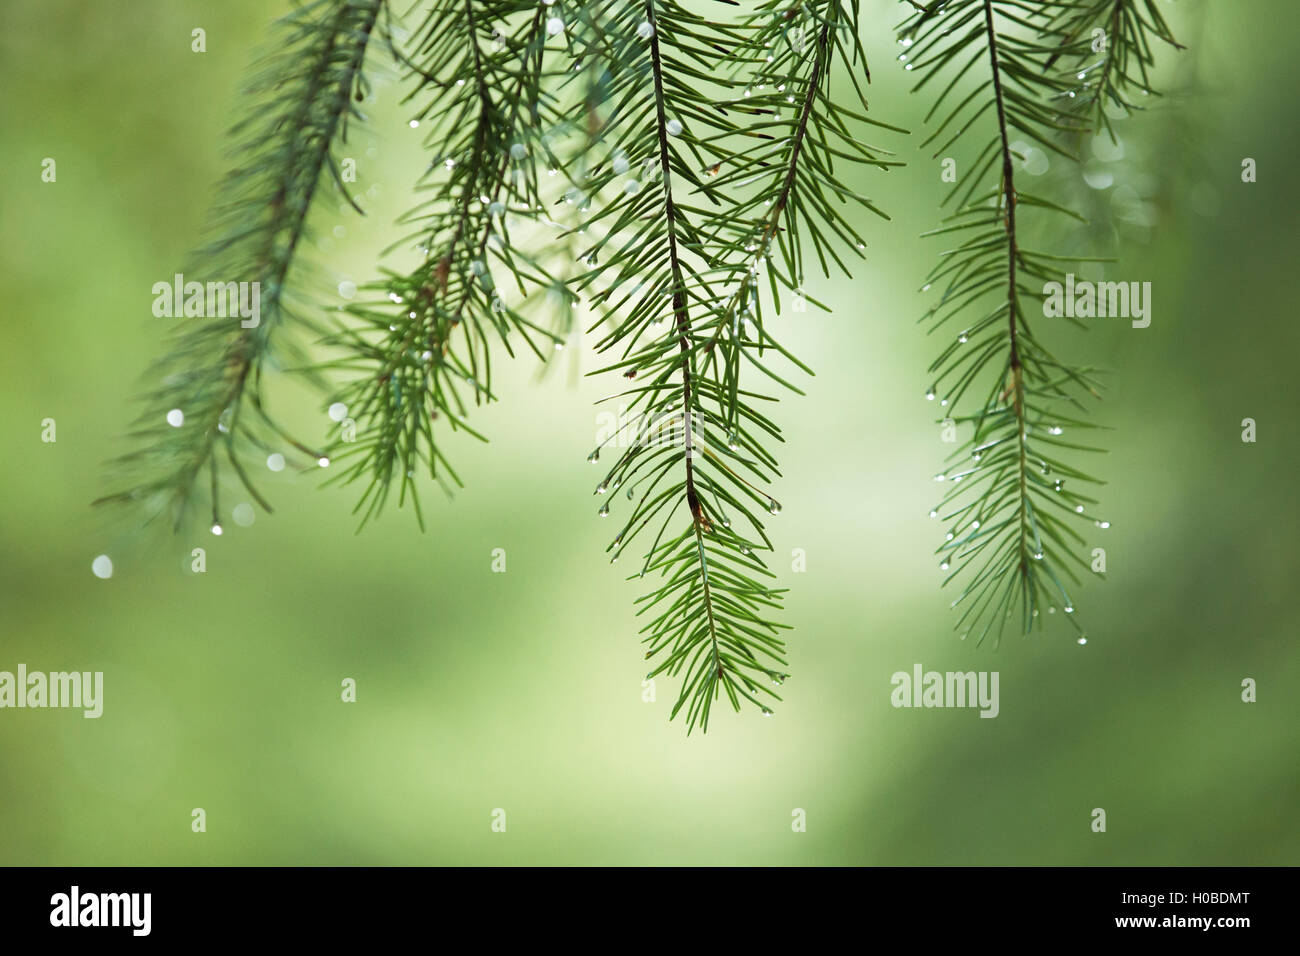 Raindrops on pine tree branches. - Stock Image